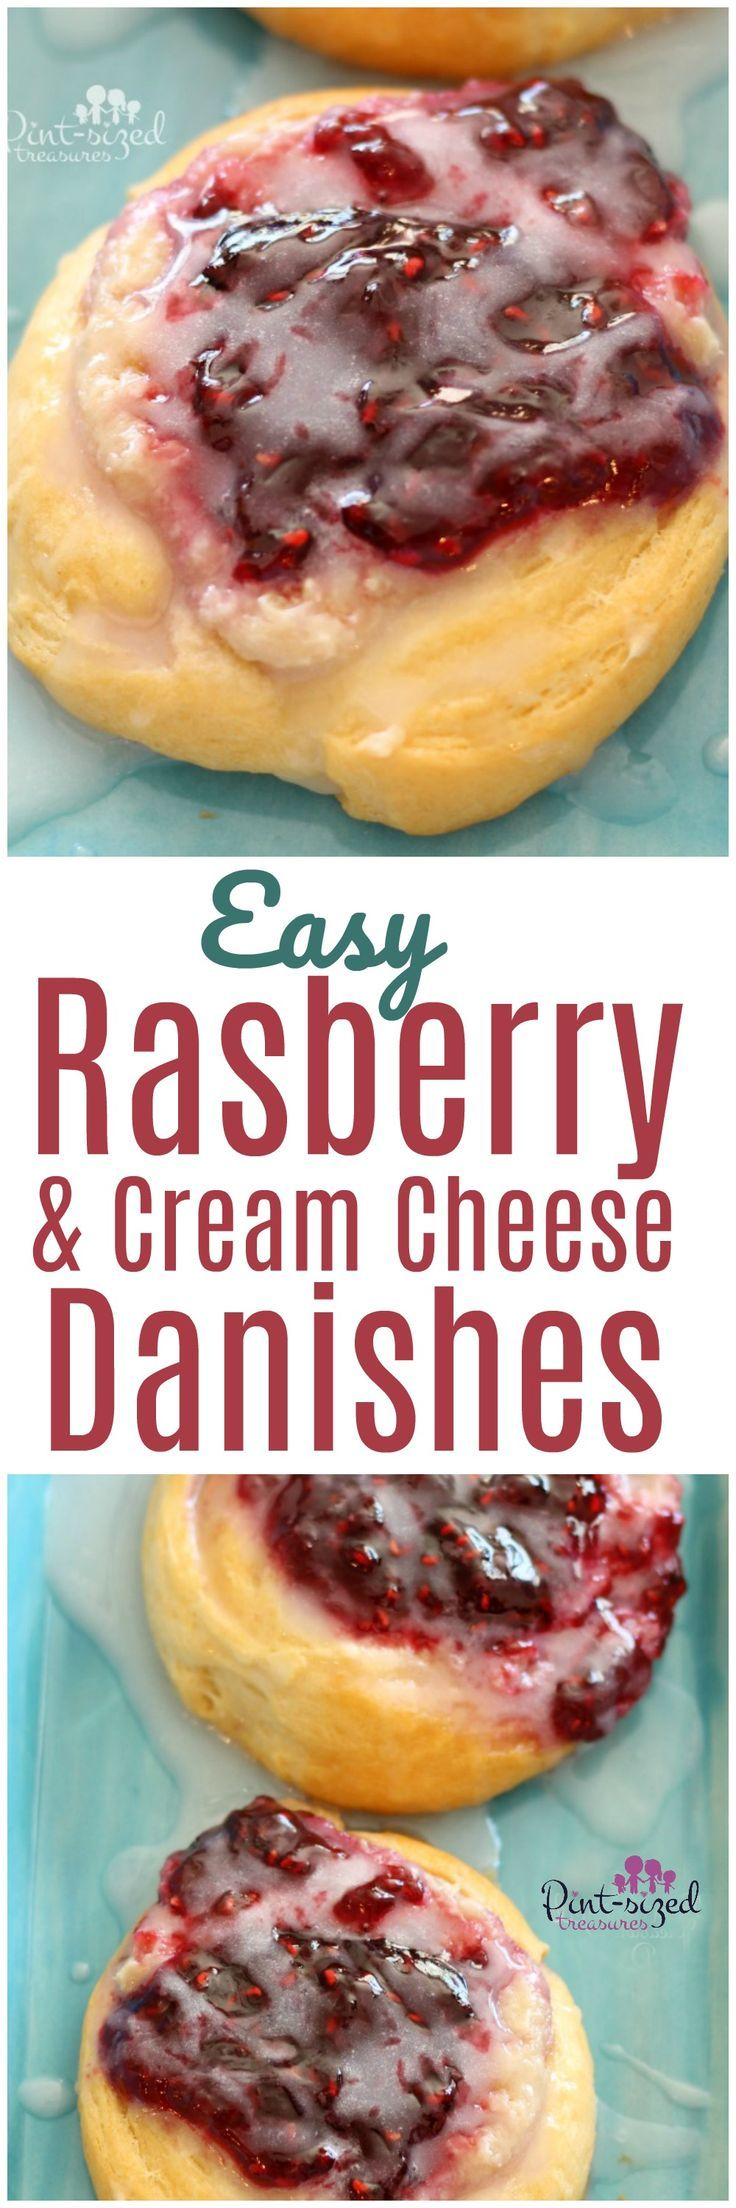 Oooh! These warm-from-the-oven, raspberry and cream cheese danishes are a cinch to whip up! They're full of creamy sweetness mixed with the tartness of raspberries that we all love! Bake up a batch of easy danishes today!